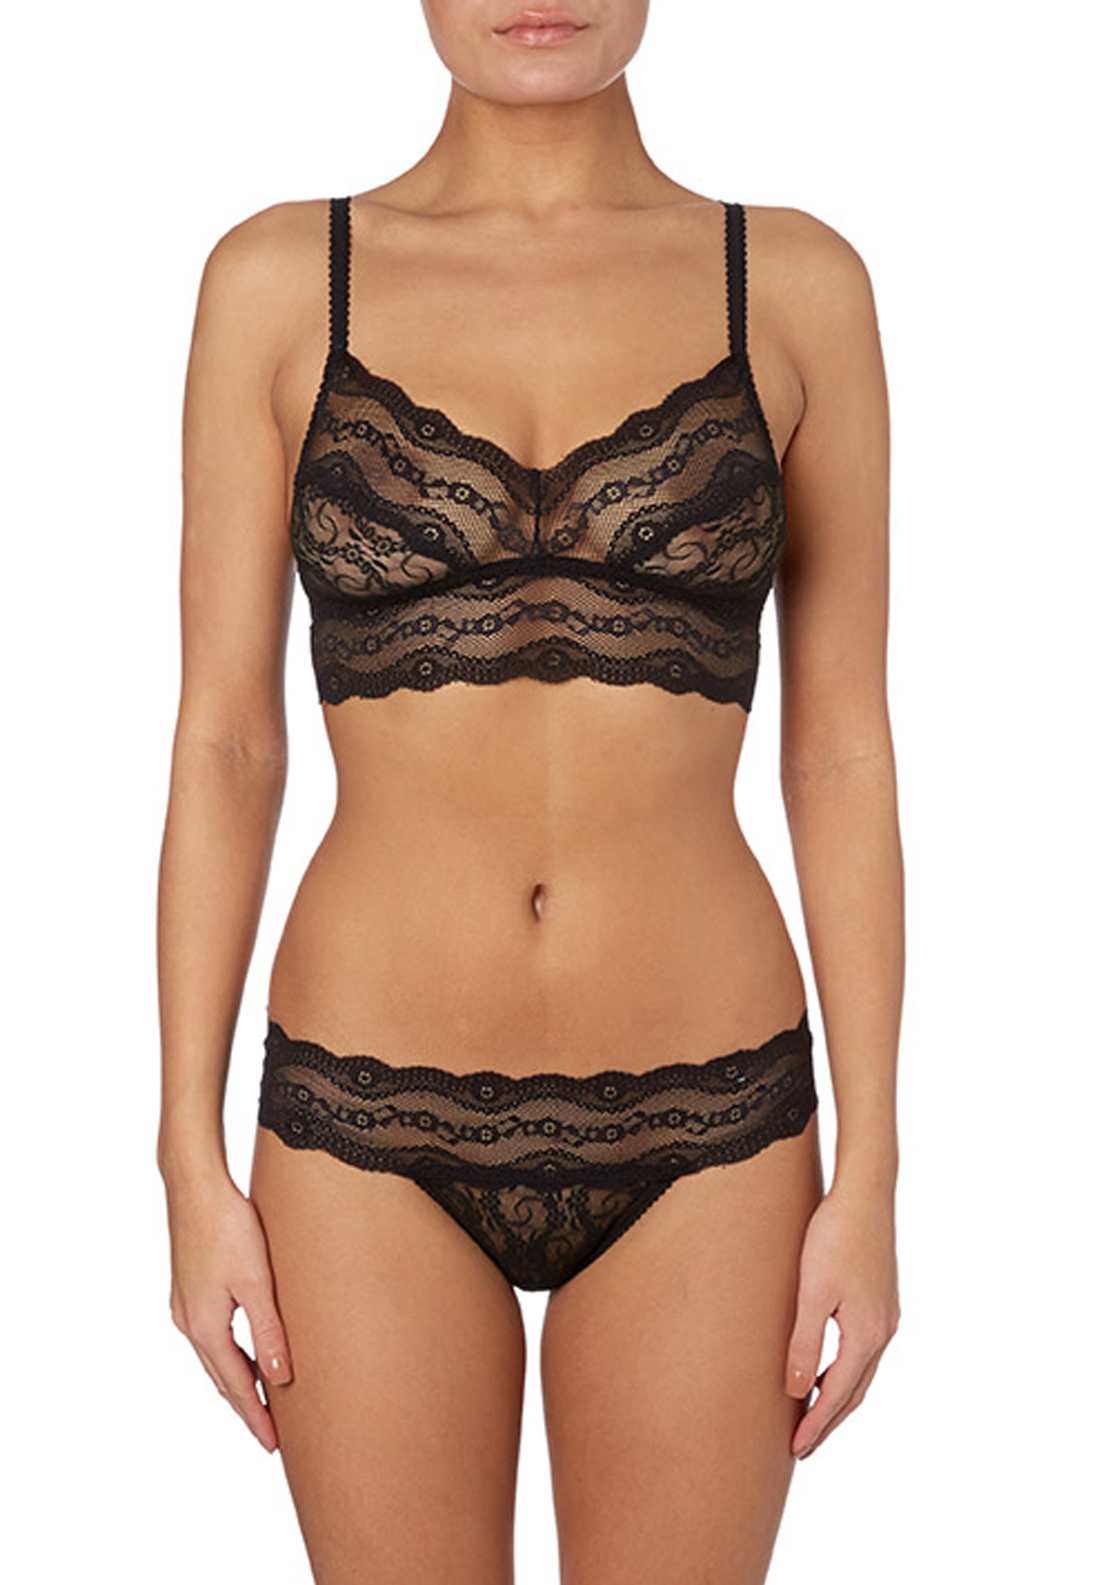 b.temptd Lace Kiss Bralette, Black